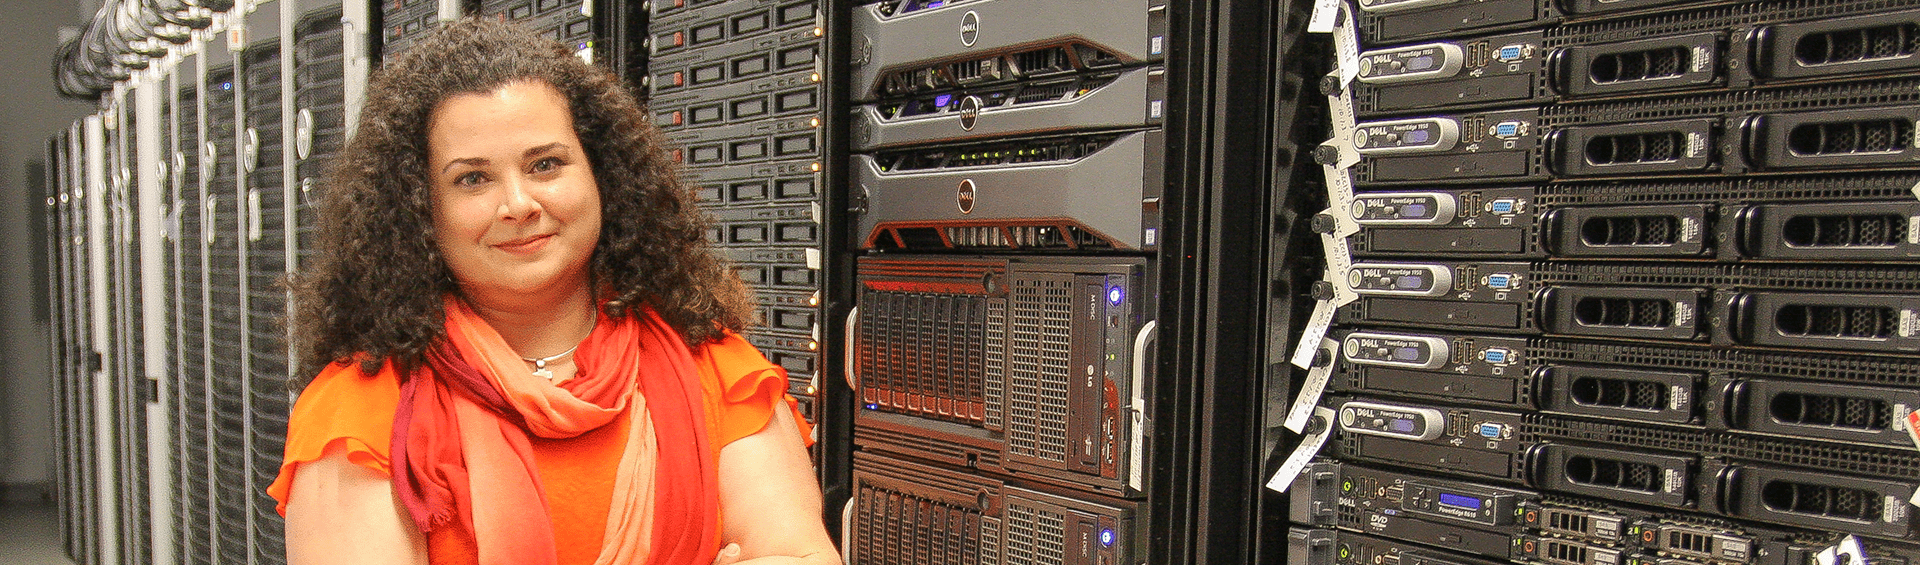 Christina Delimitrou: Designing resource-efficient datacenters